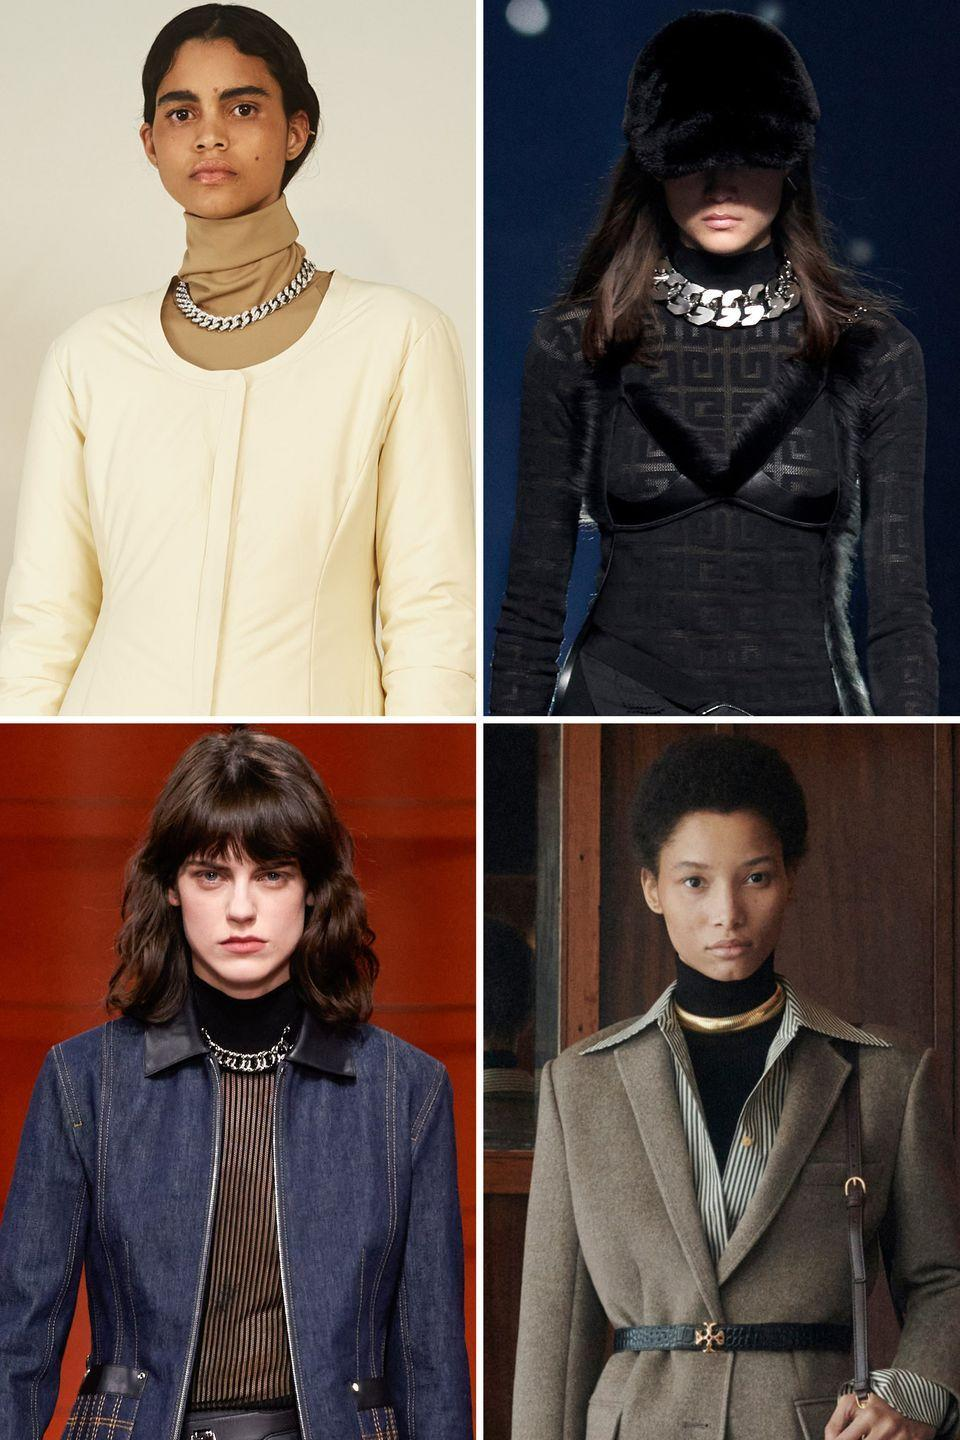 <p>A heavy linked silver chain over a turtleneck has a bit of punk bourgeoisie edge. </p><p><strong>Insider tip: </strong>A close fit around the seam was the freshest take.</p><p><em>Pictured: Ambush, Givenchy, Hermes, Tory Burch</em></p>